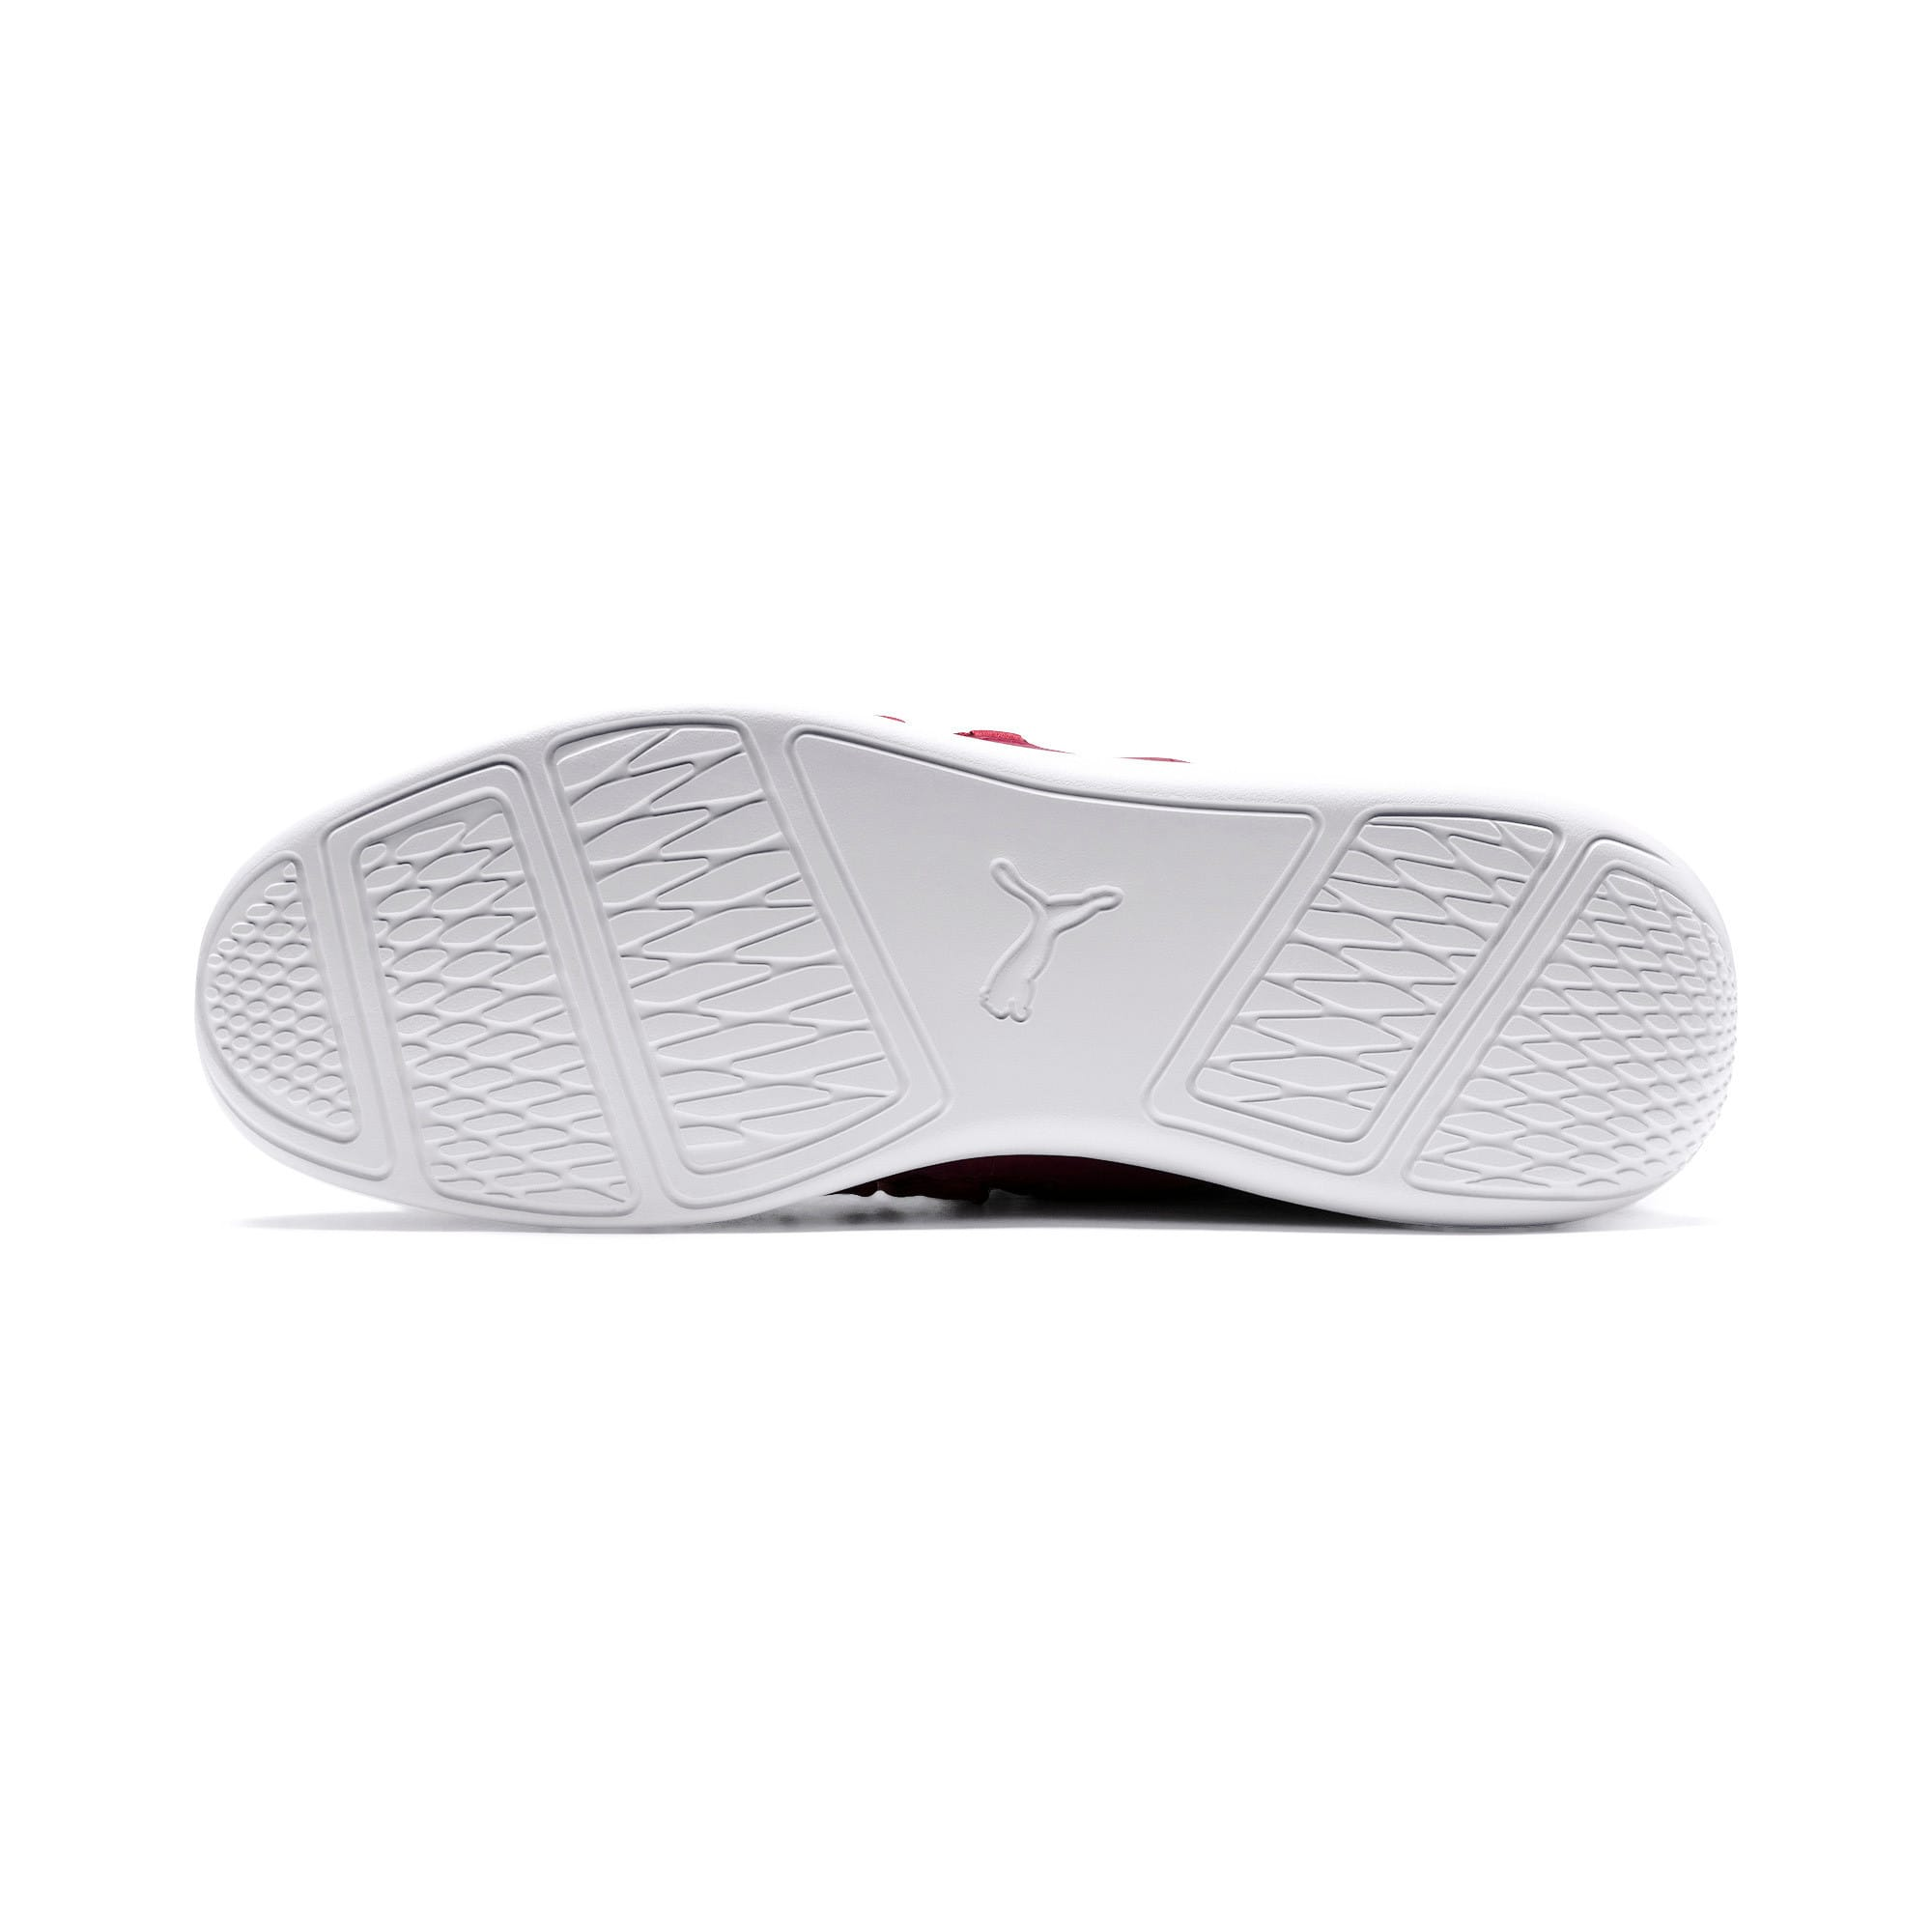 Thumbnail 3 of Ferrari Evo Cat Lace Lifestyle Shoes, Pomegranate-Bossa Nova-Wht, medium